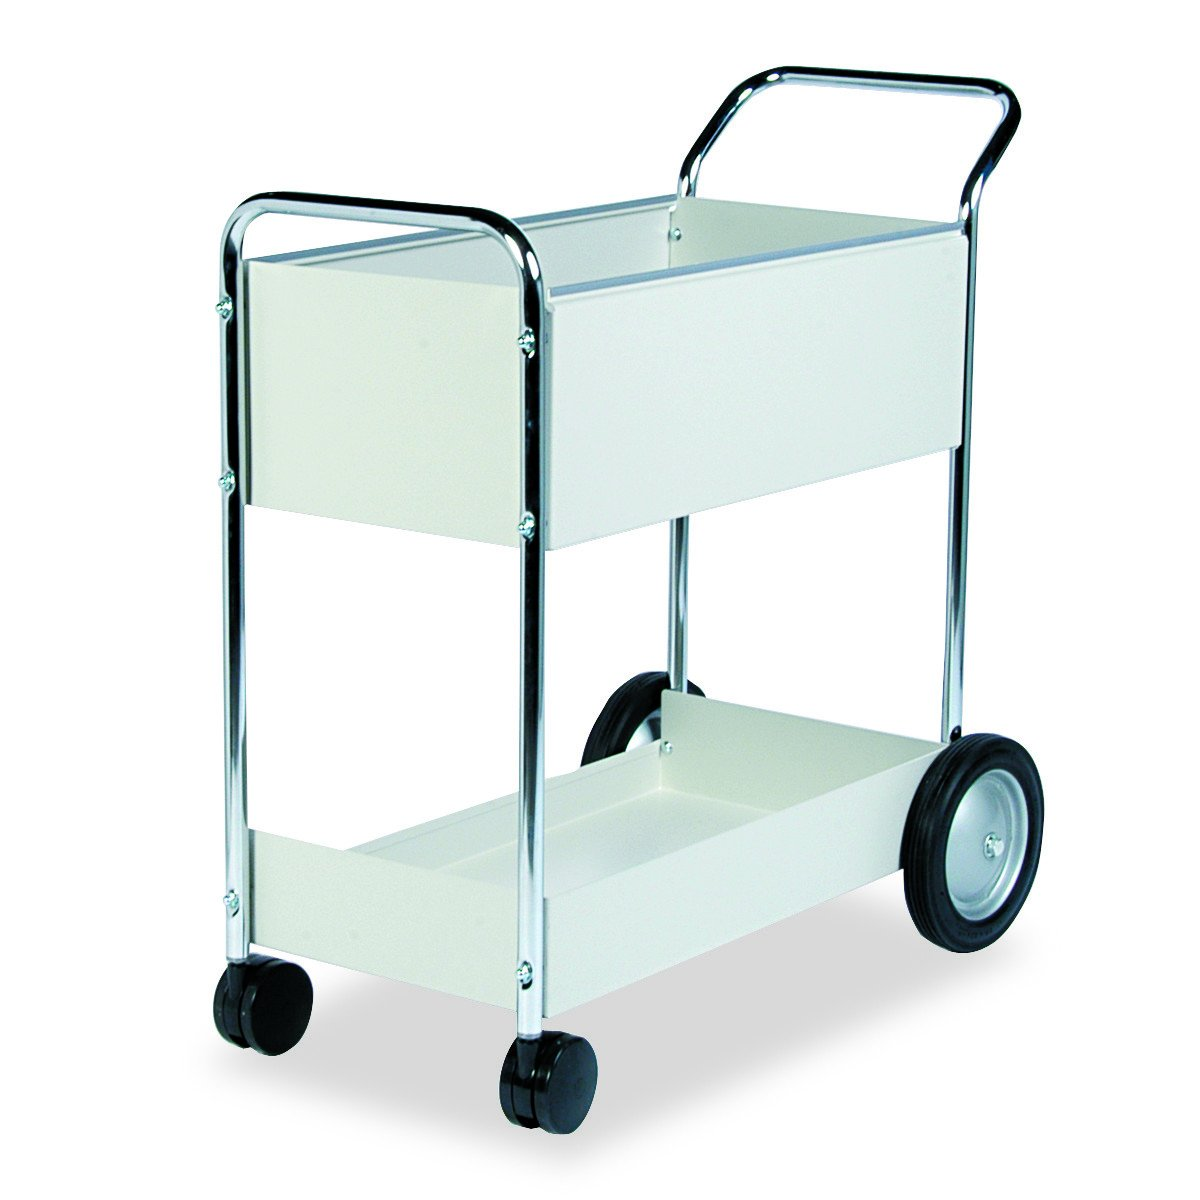 Fellowes 40922 Steel Mail Cart, 150-Folder Capacity, 20w x 40-1/2d x 39h, Dove Gray by Fellowes